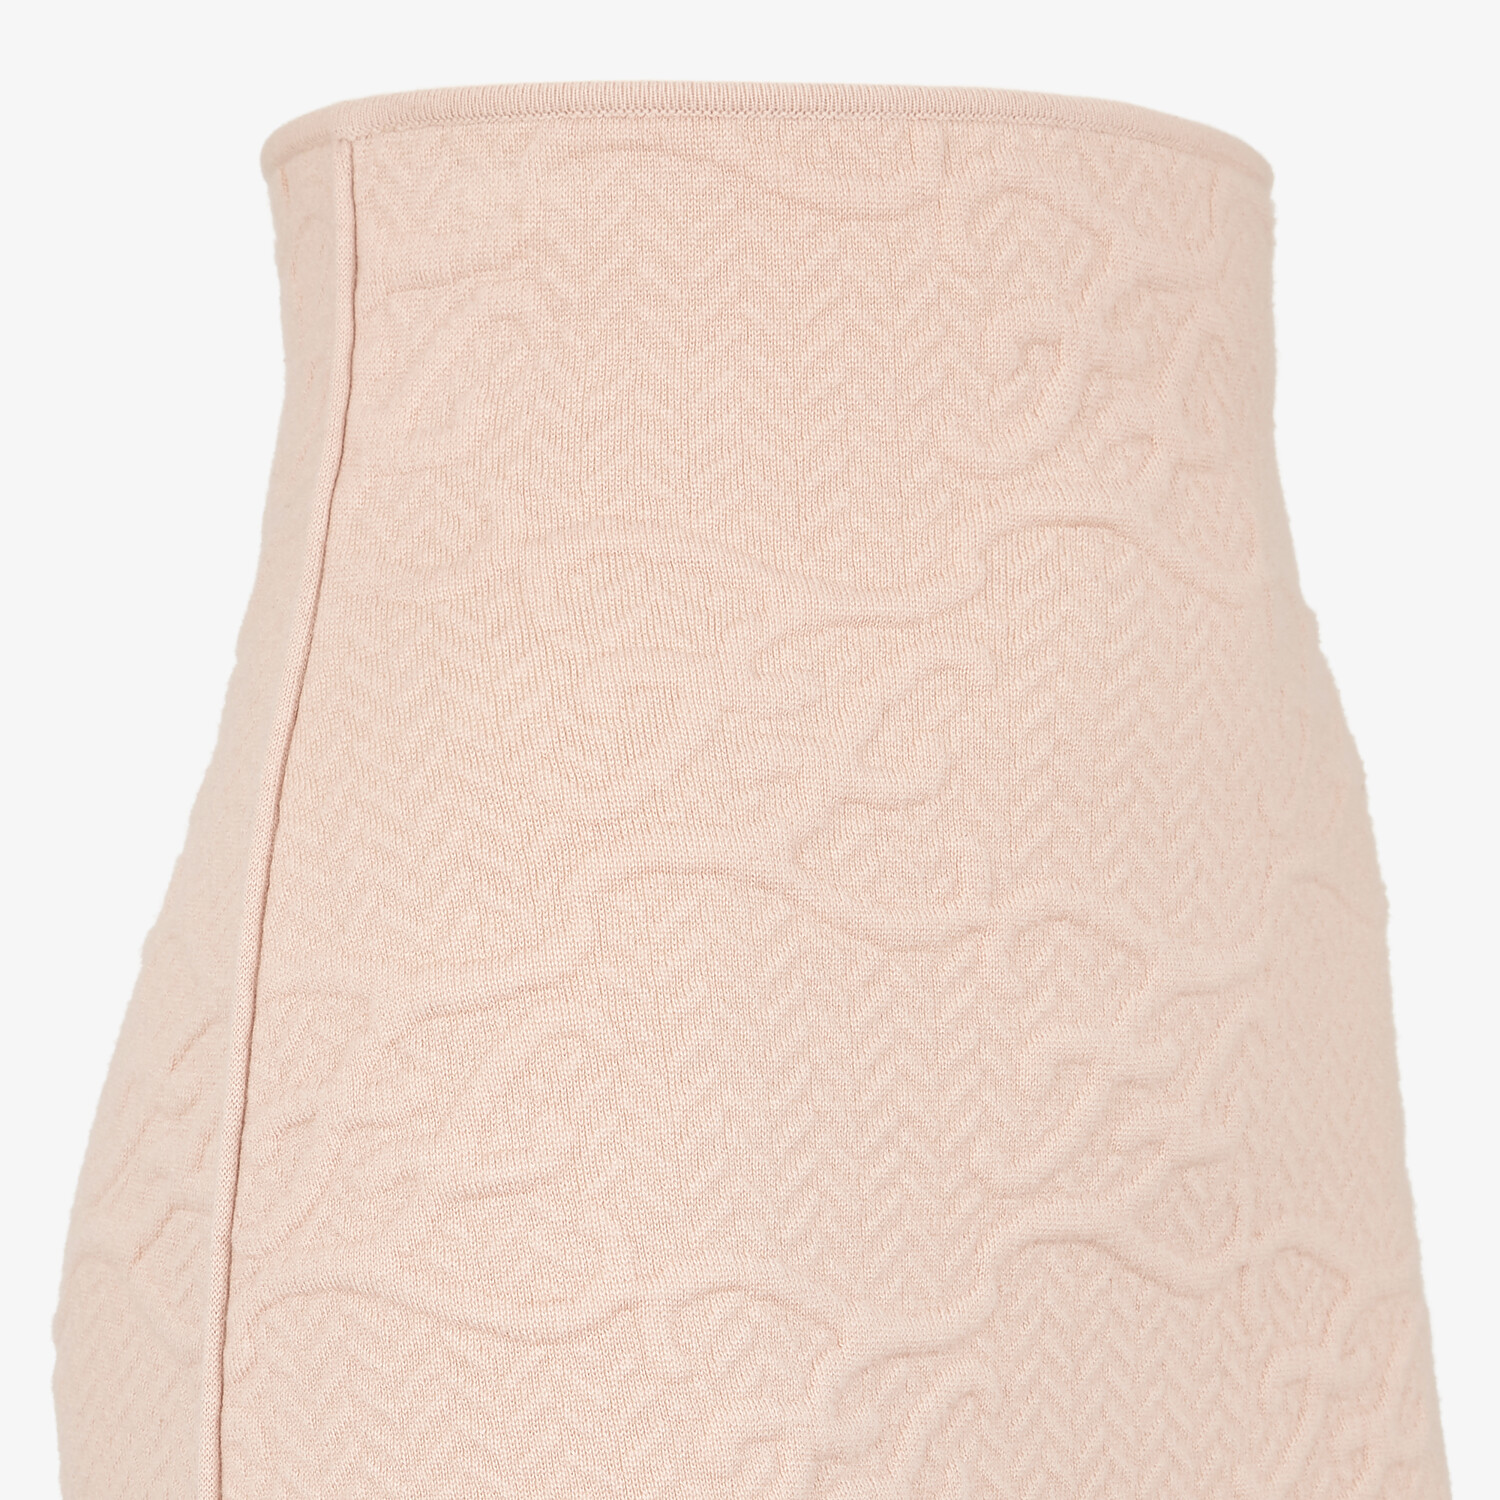 FENDI SKIRT - Pink wool and cashmere skirt - view 3 detail